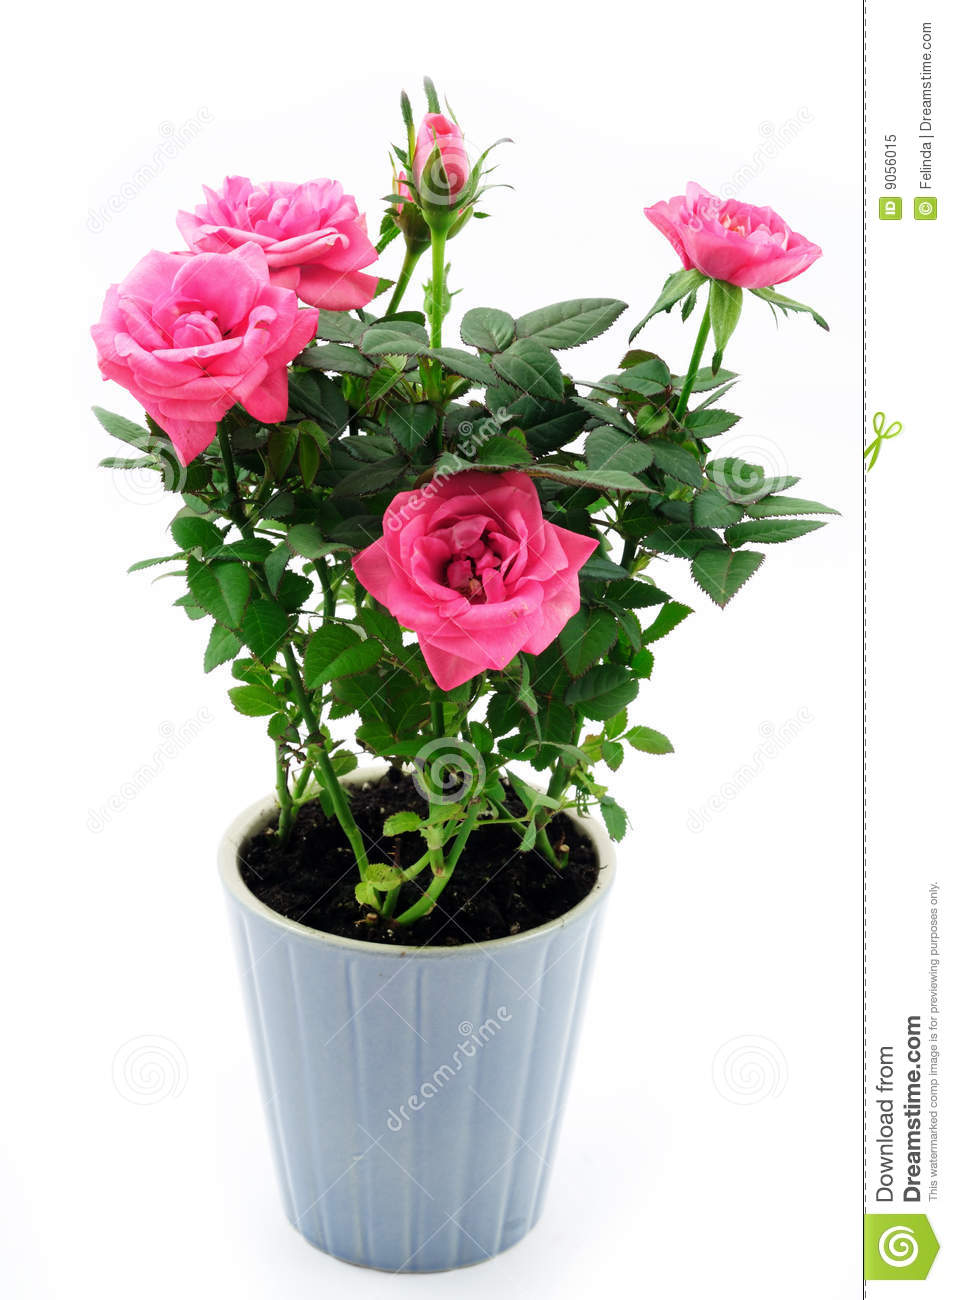 Rose In The Pot Royalty Free Stock Photo Image 9056015